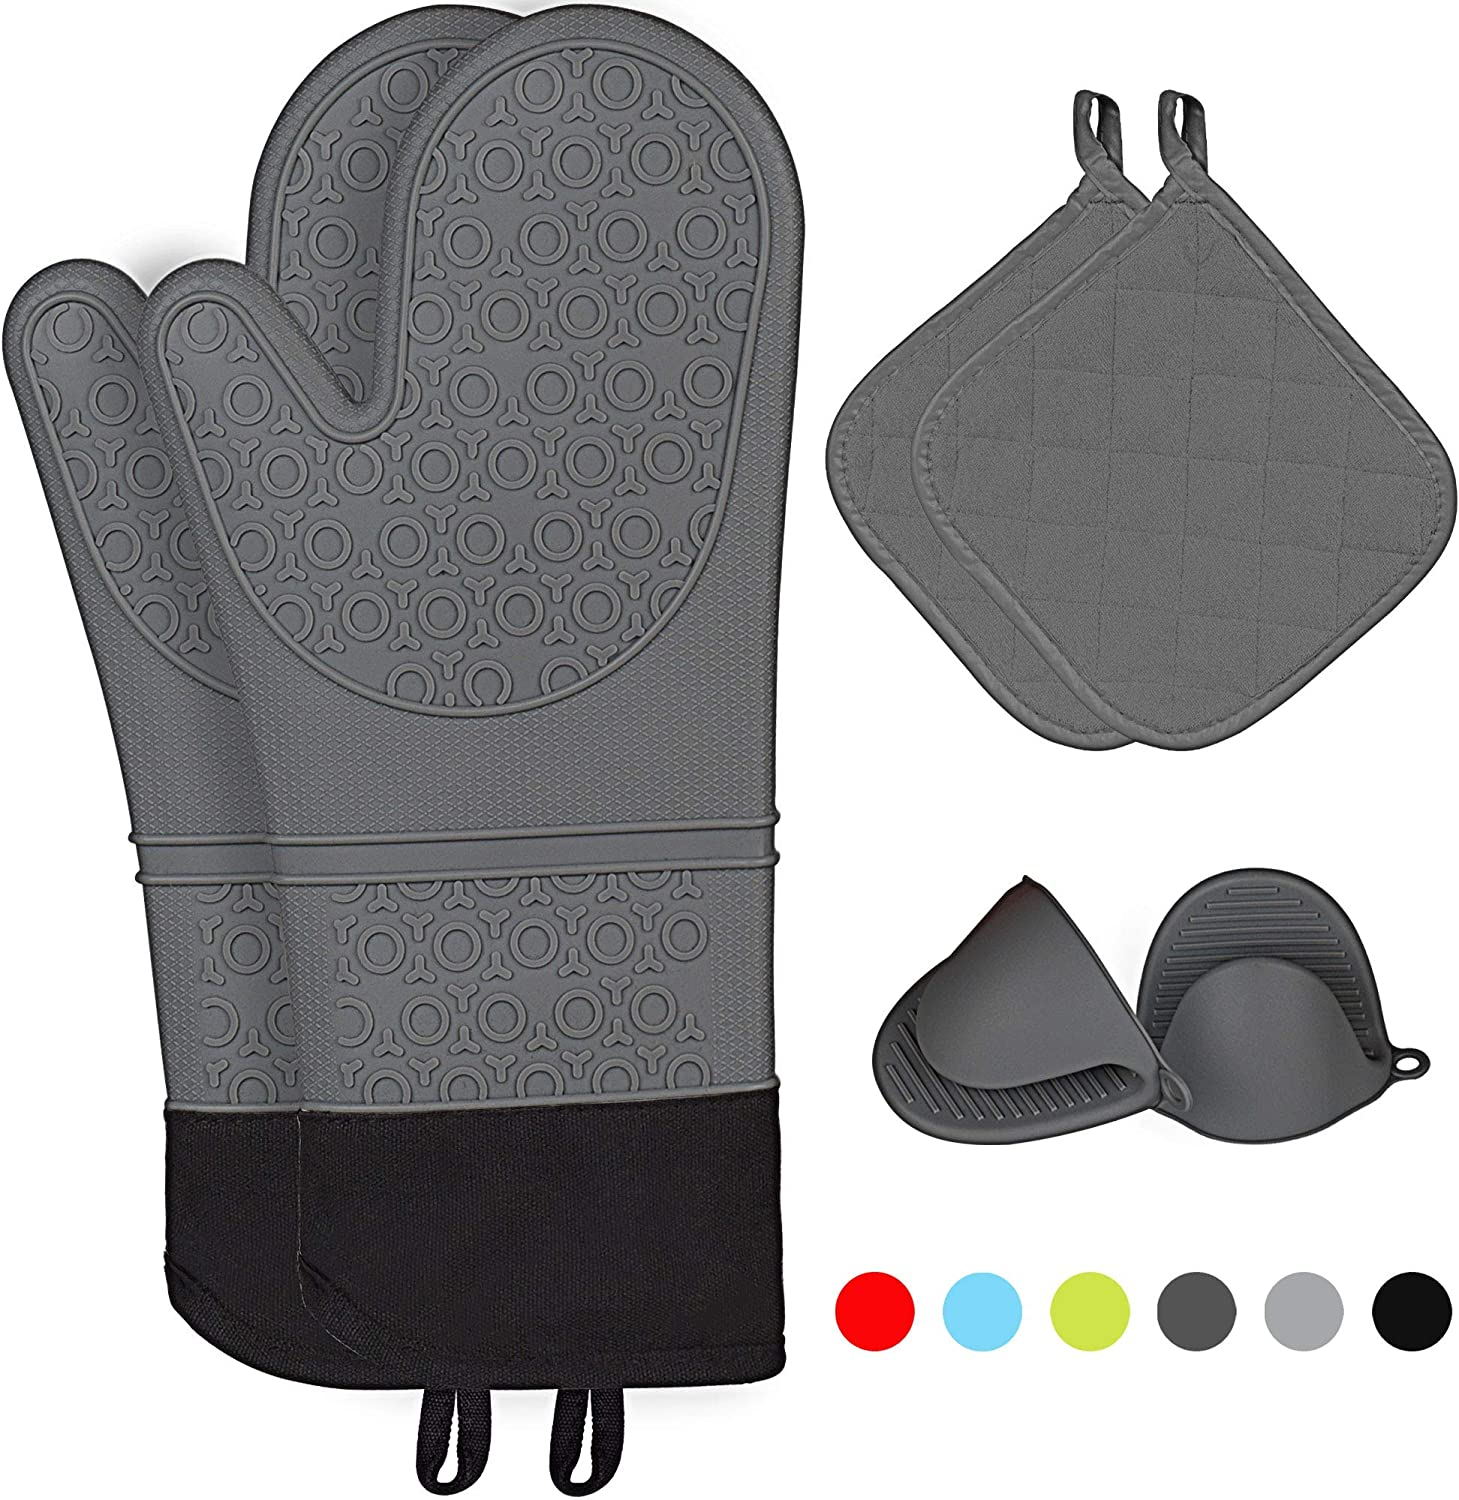 Kiya Silicone Oven Mitts & 2 Pot Holders & 2 Cooking Pinch Mitts(6-Piece Sets) - Heat Resistant to 460 F - Extra Long Oven Gloves with Soft Inner Lining (Dark Grey)